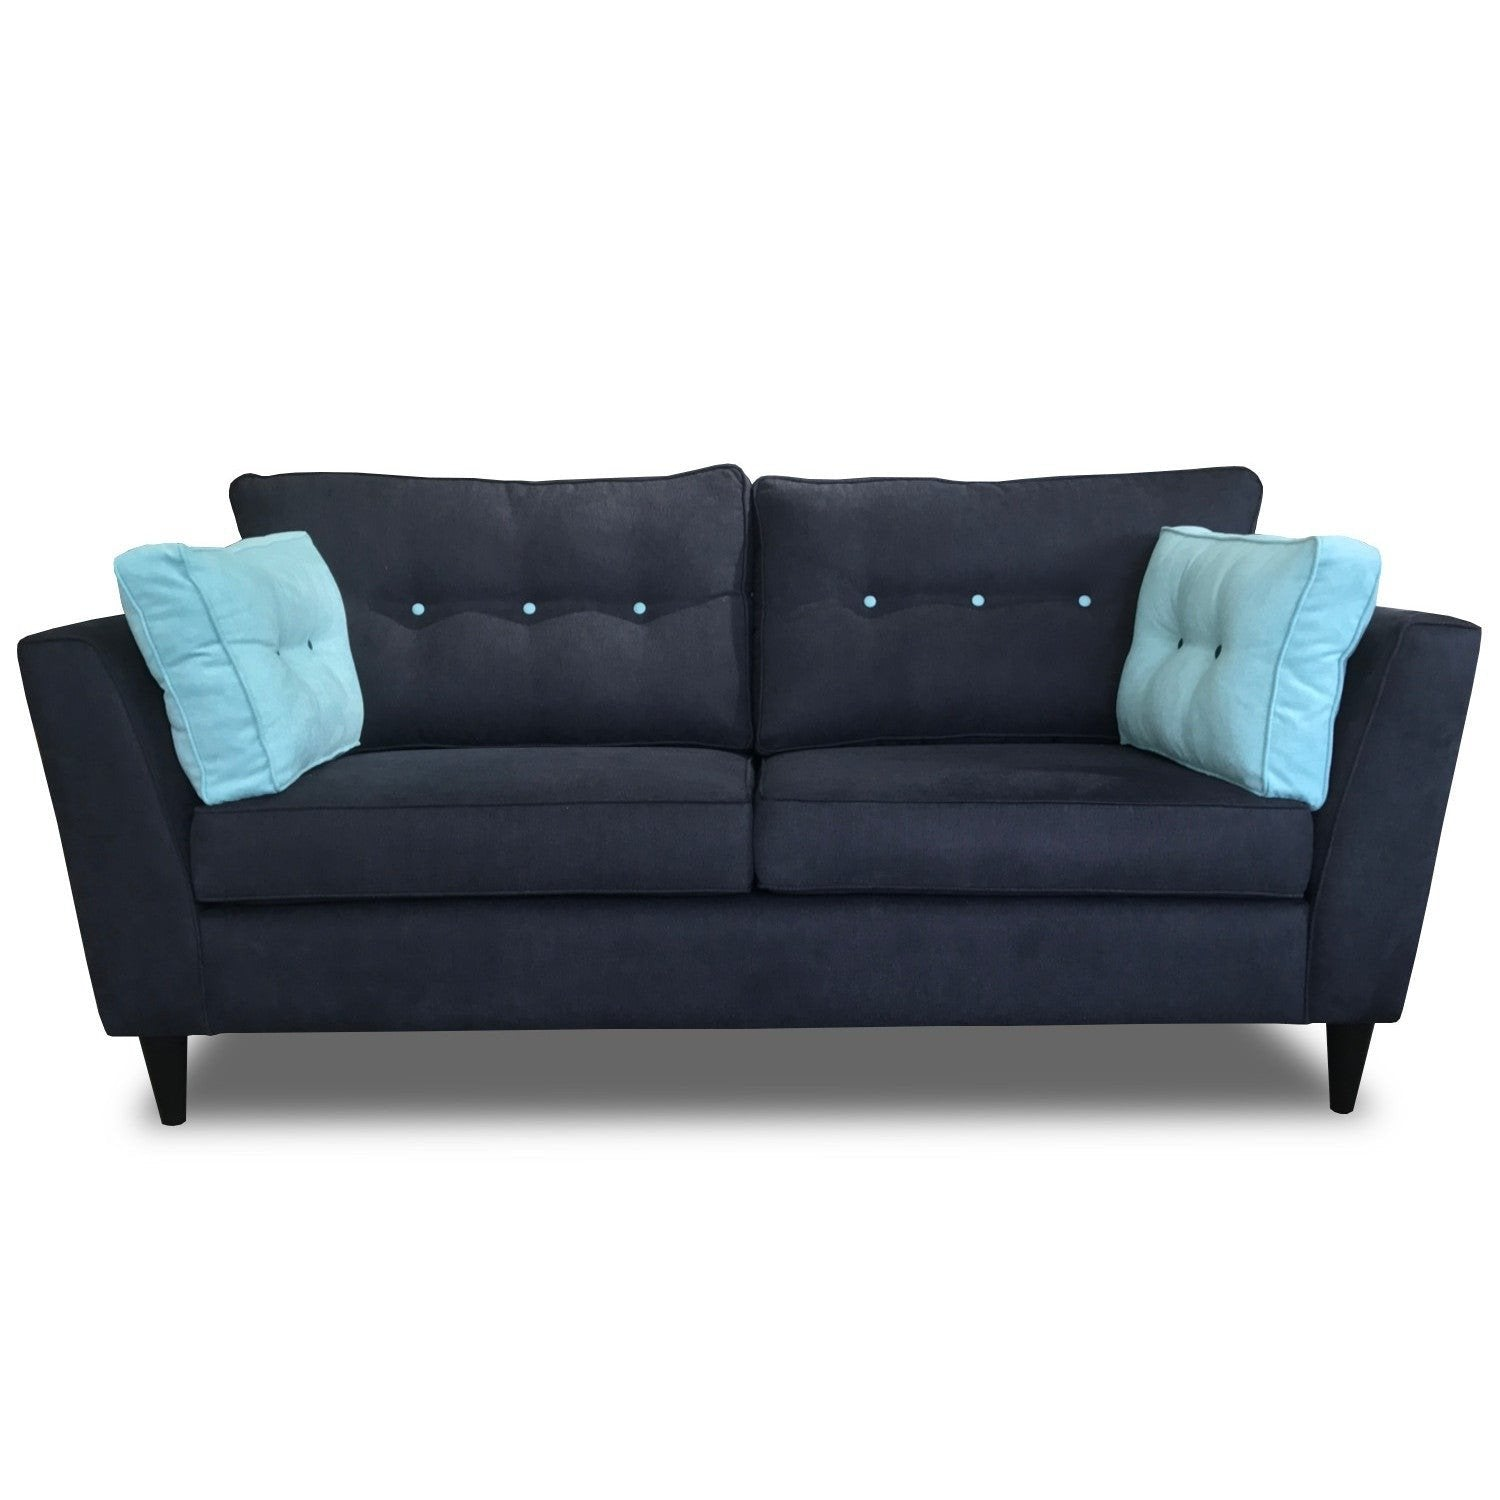 Memphis 2.5 Seater Sofa - The Furniture Store & The Bed Shop